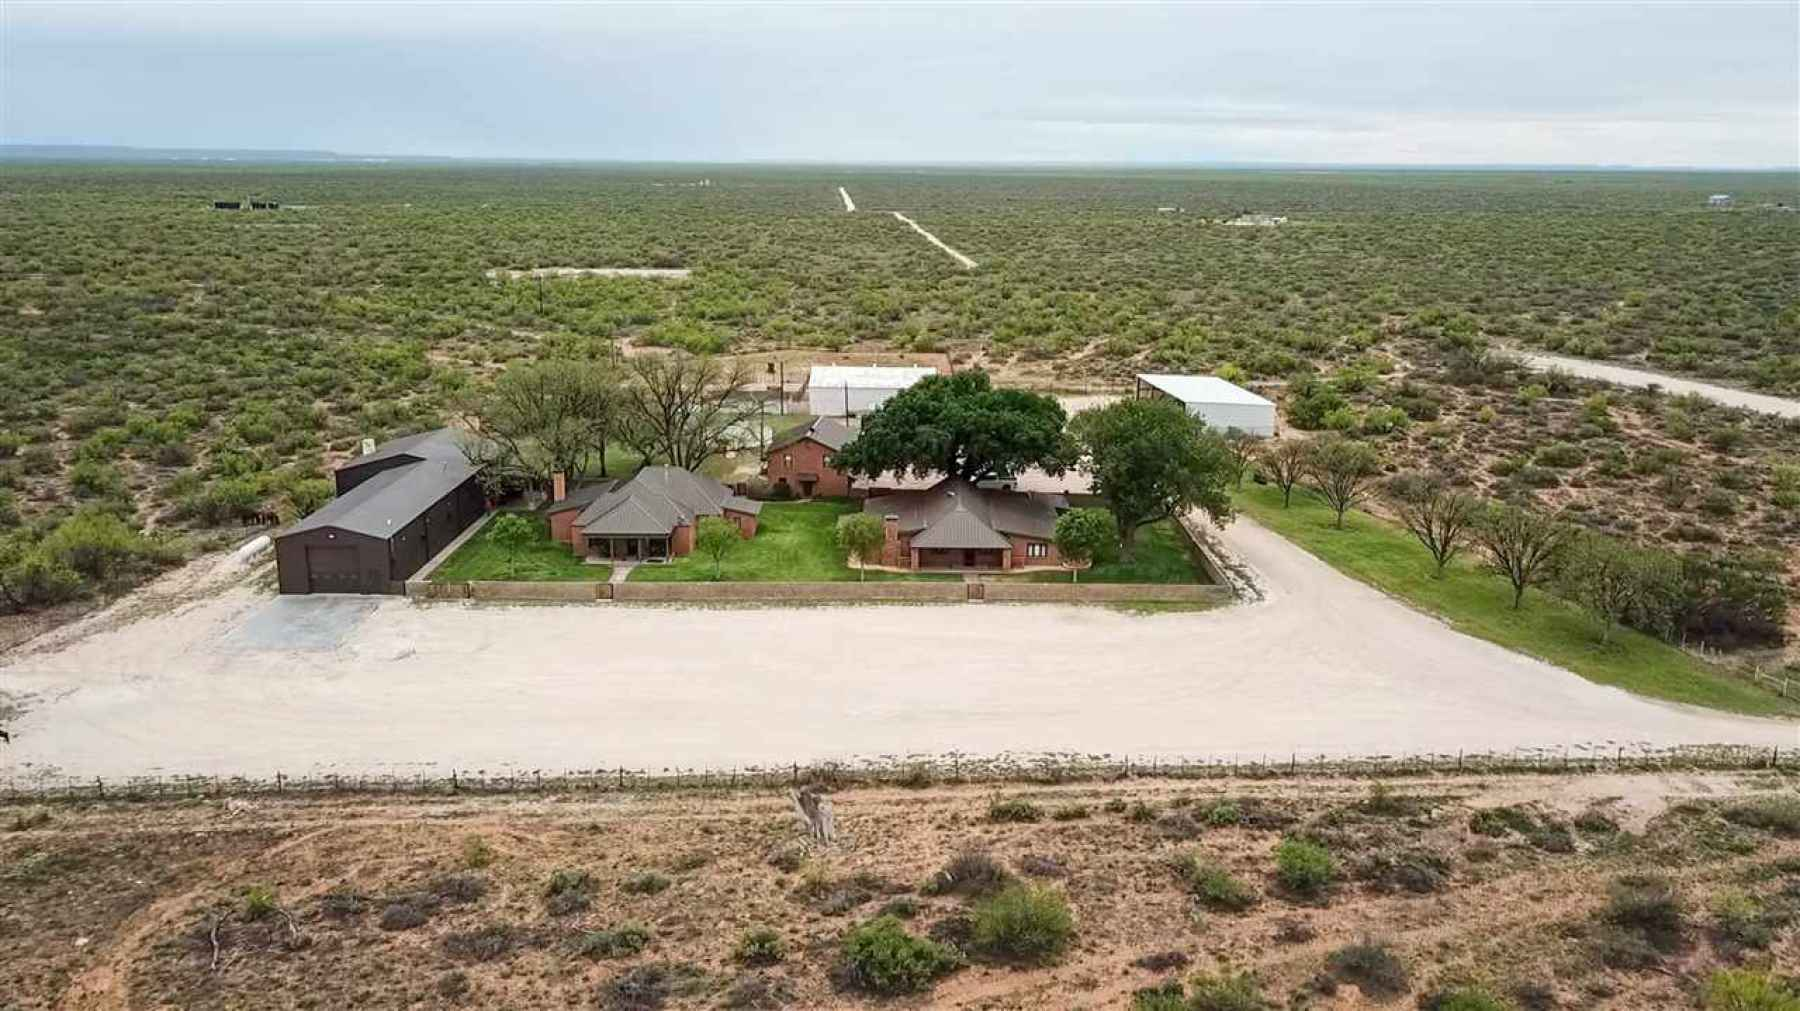 Consists of two house, large RV port and trophy room, and a garage apartment, plus barn/equipment.